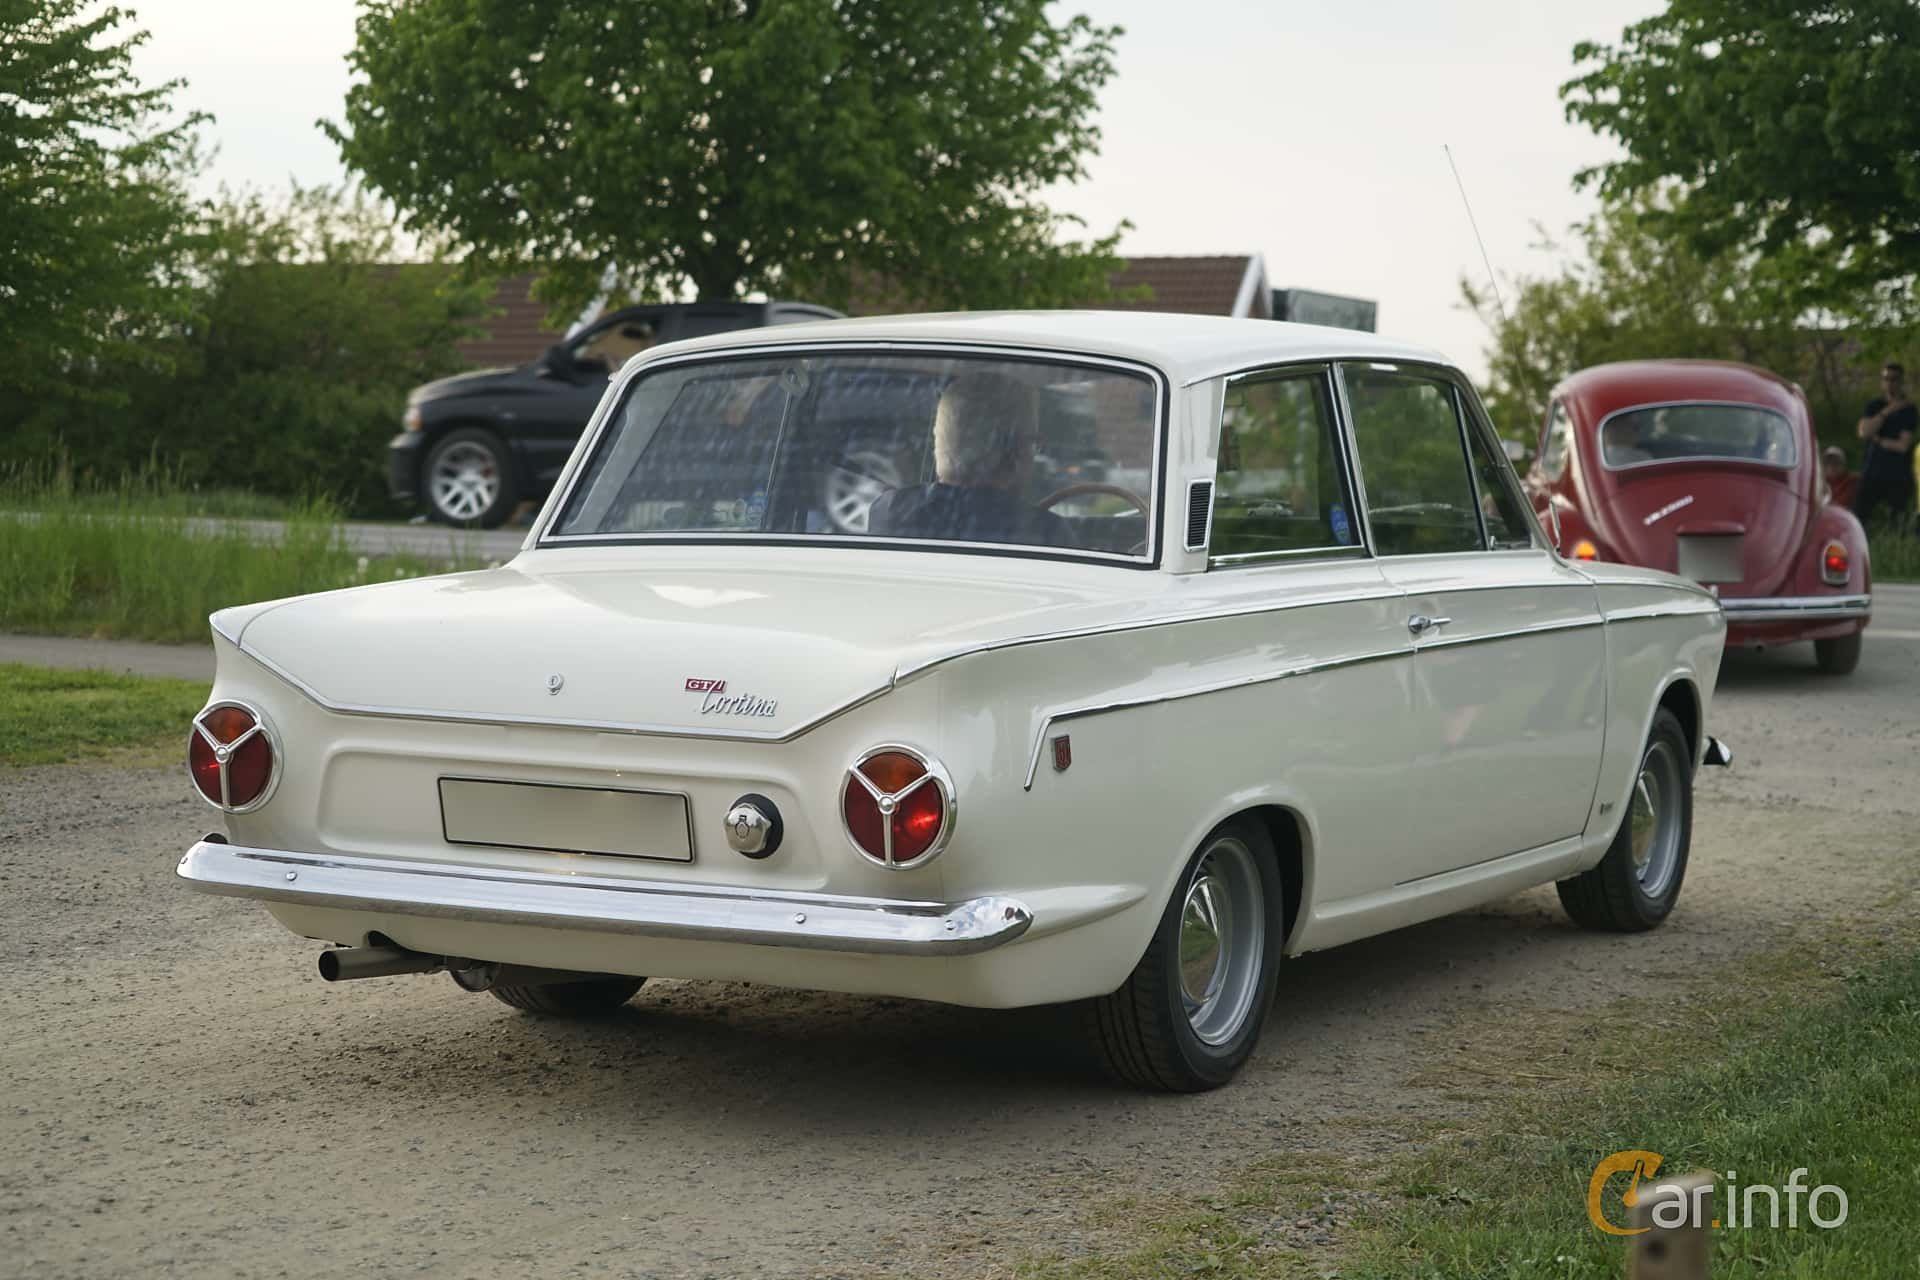 Ford Cortina GT 2-door 1.5 Manual, 76hp, 1966 at Tisdagsträffarna Vikingatider v.21 / 2017